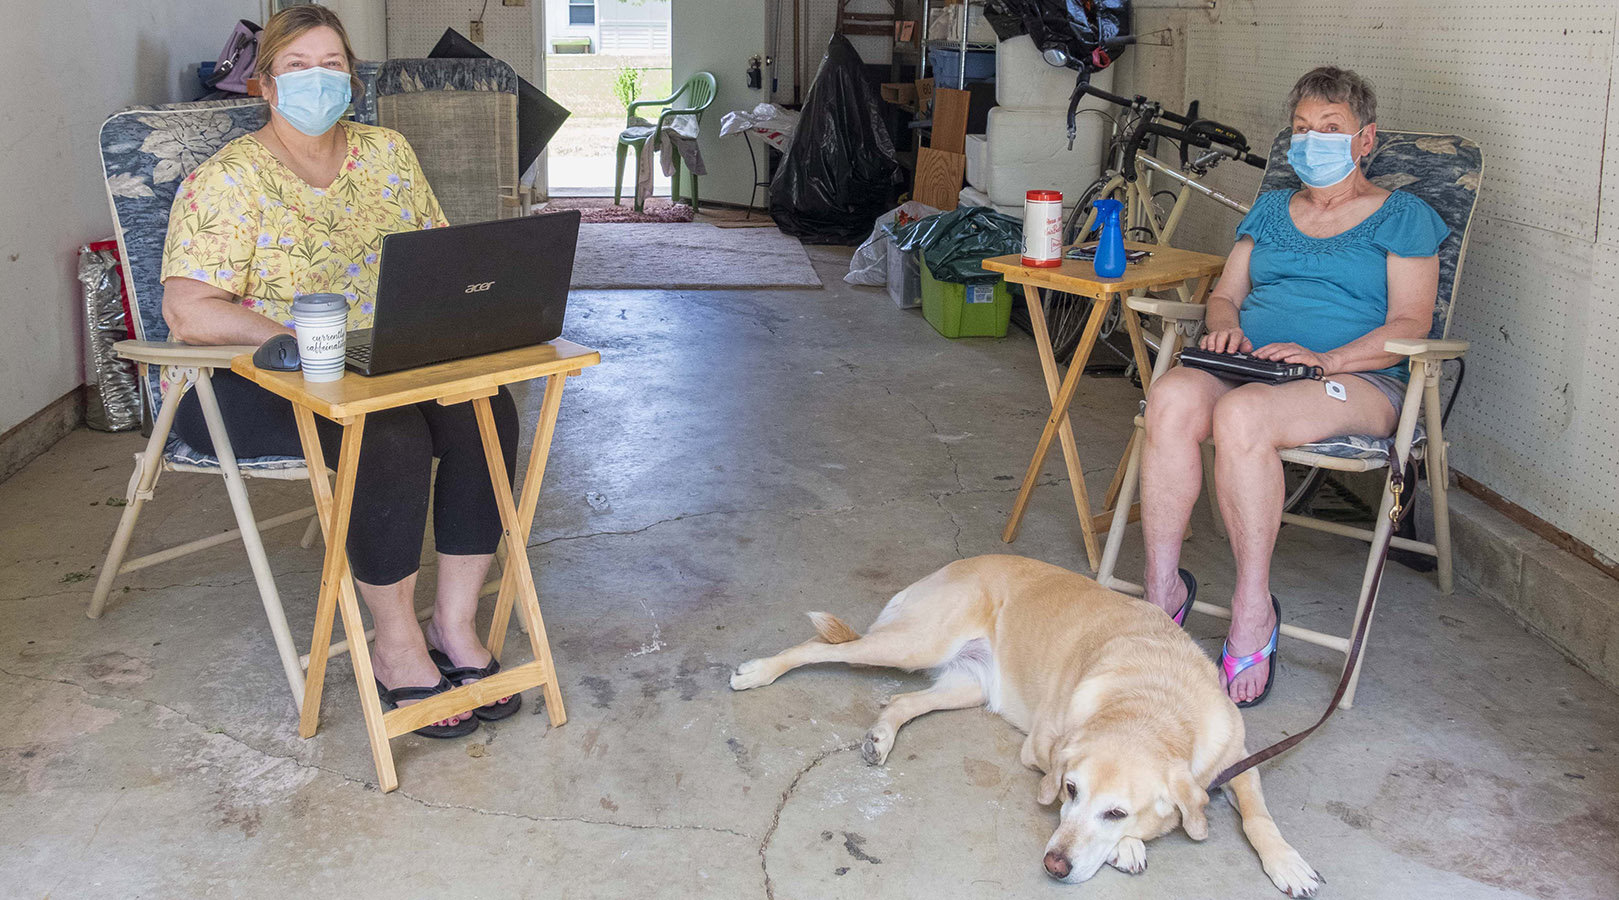 Two White women are socially distanced in a garage, both wearing masks -- one woman uses a braille notetaker as a dog lies at her feet and the other uses a laptop.